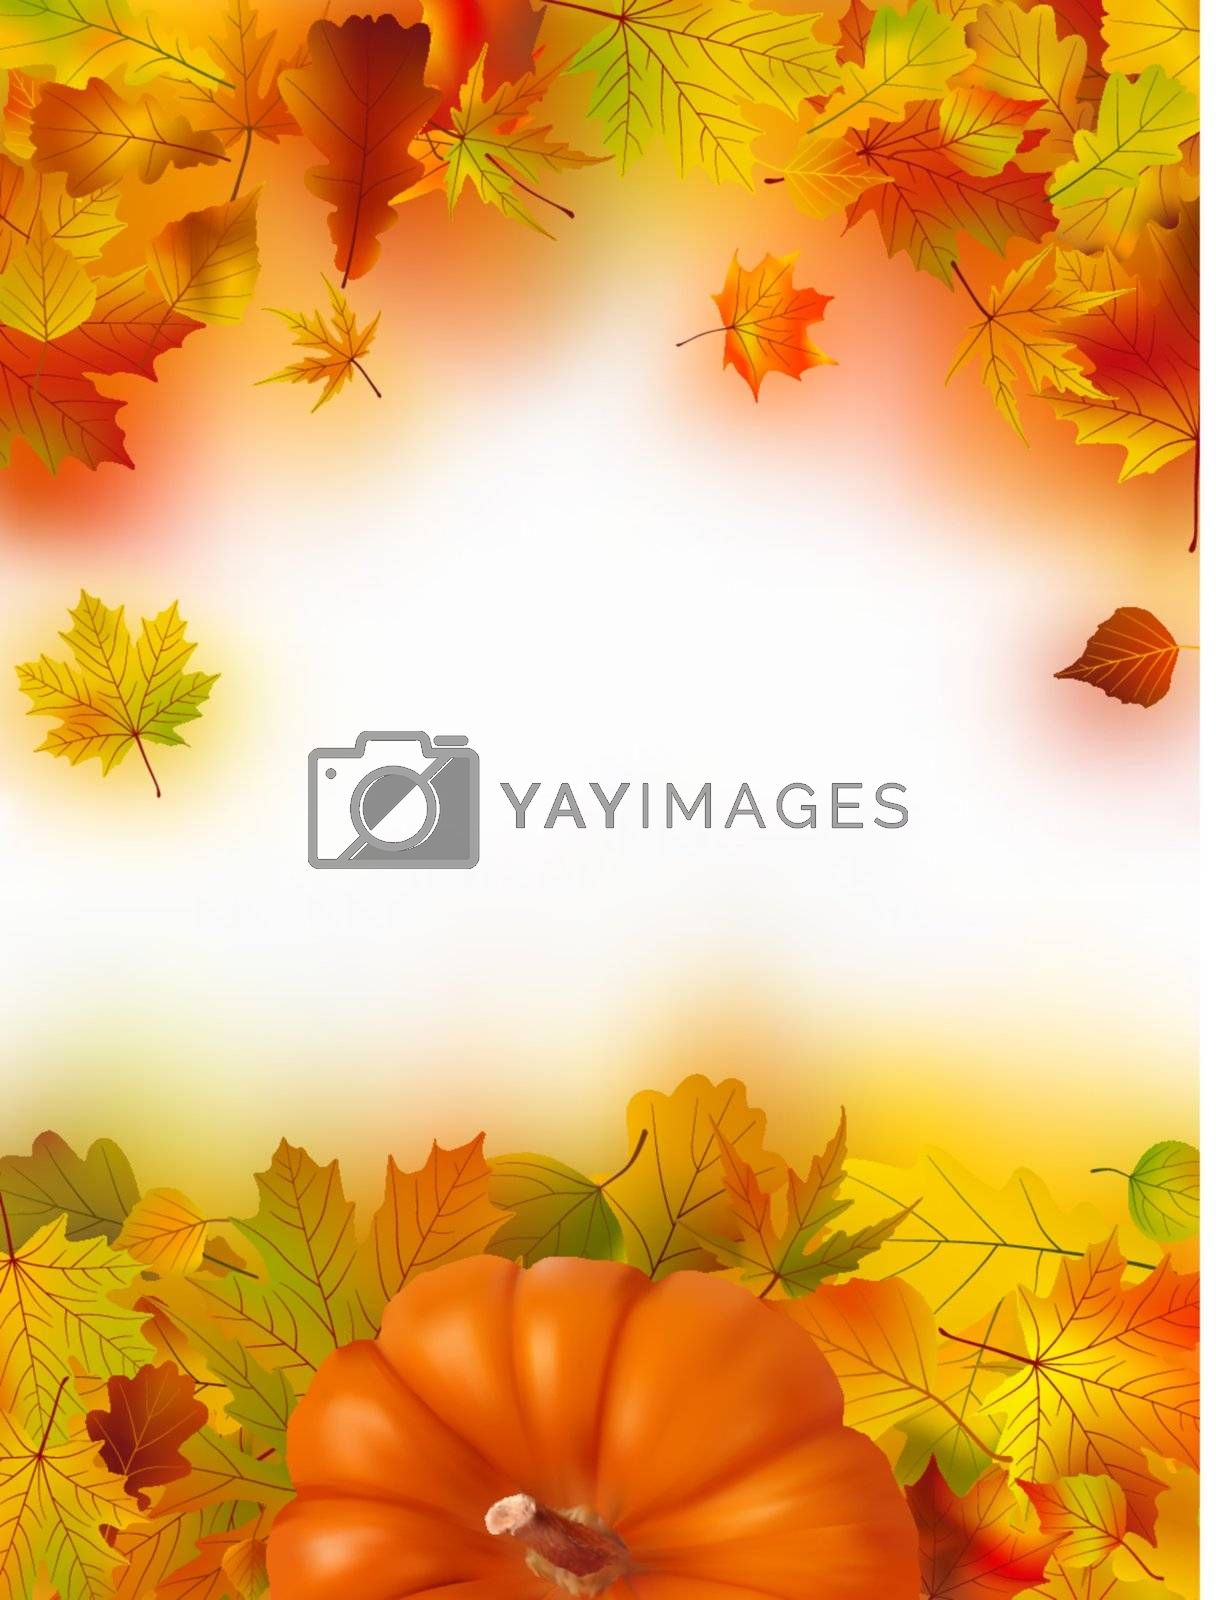 Image and Illustration composition for Thanksgiving invitation border or background with copy space.